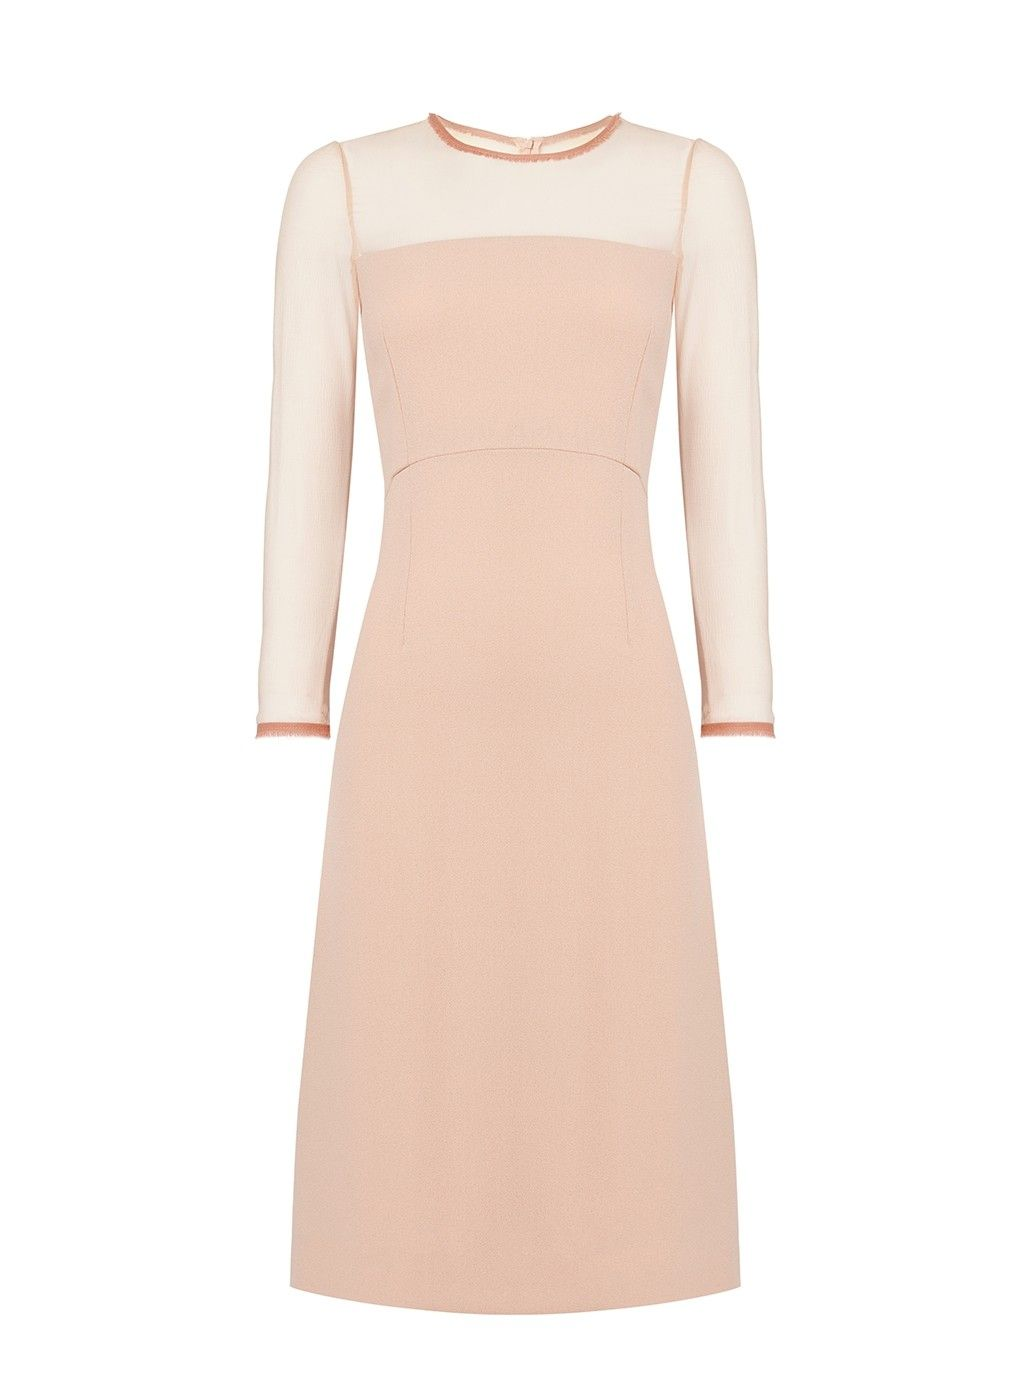 3e8a2371e508 Lyst Has Ranked the Most Sought After-Fashion Items – StyleFT- Style ...